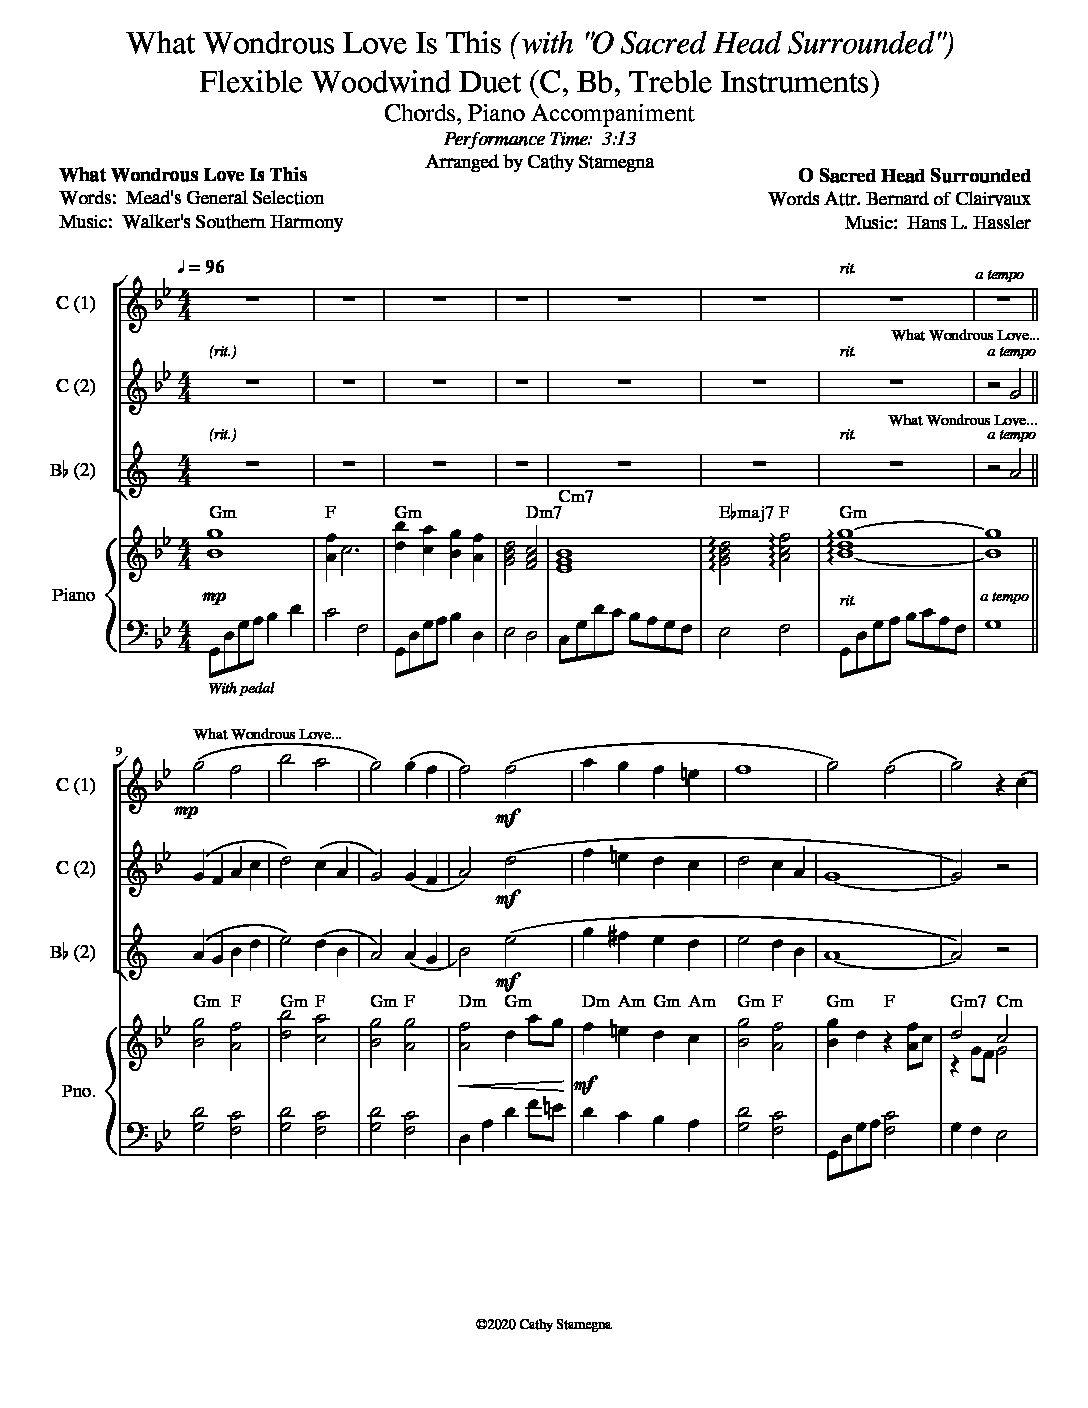 "What Wondrous Love Is This (with ""O Sacred Head Surrounded"") (Flexible Woodwind Duet for Treble C, Bb Instruments, Chords, Piano)"